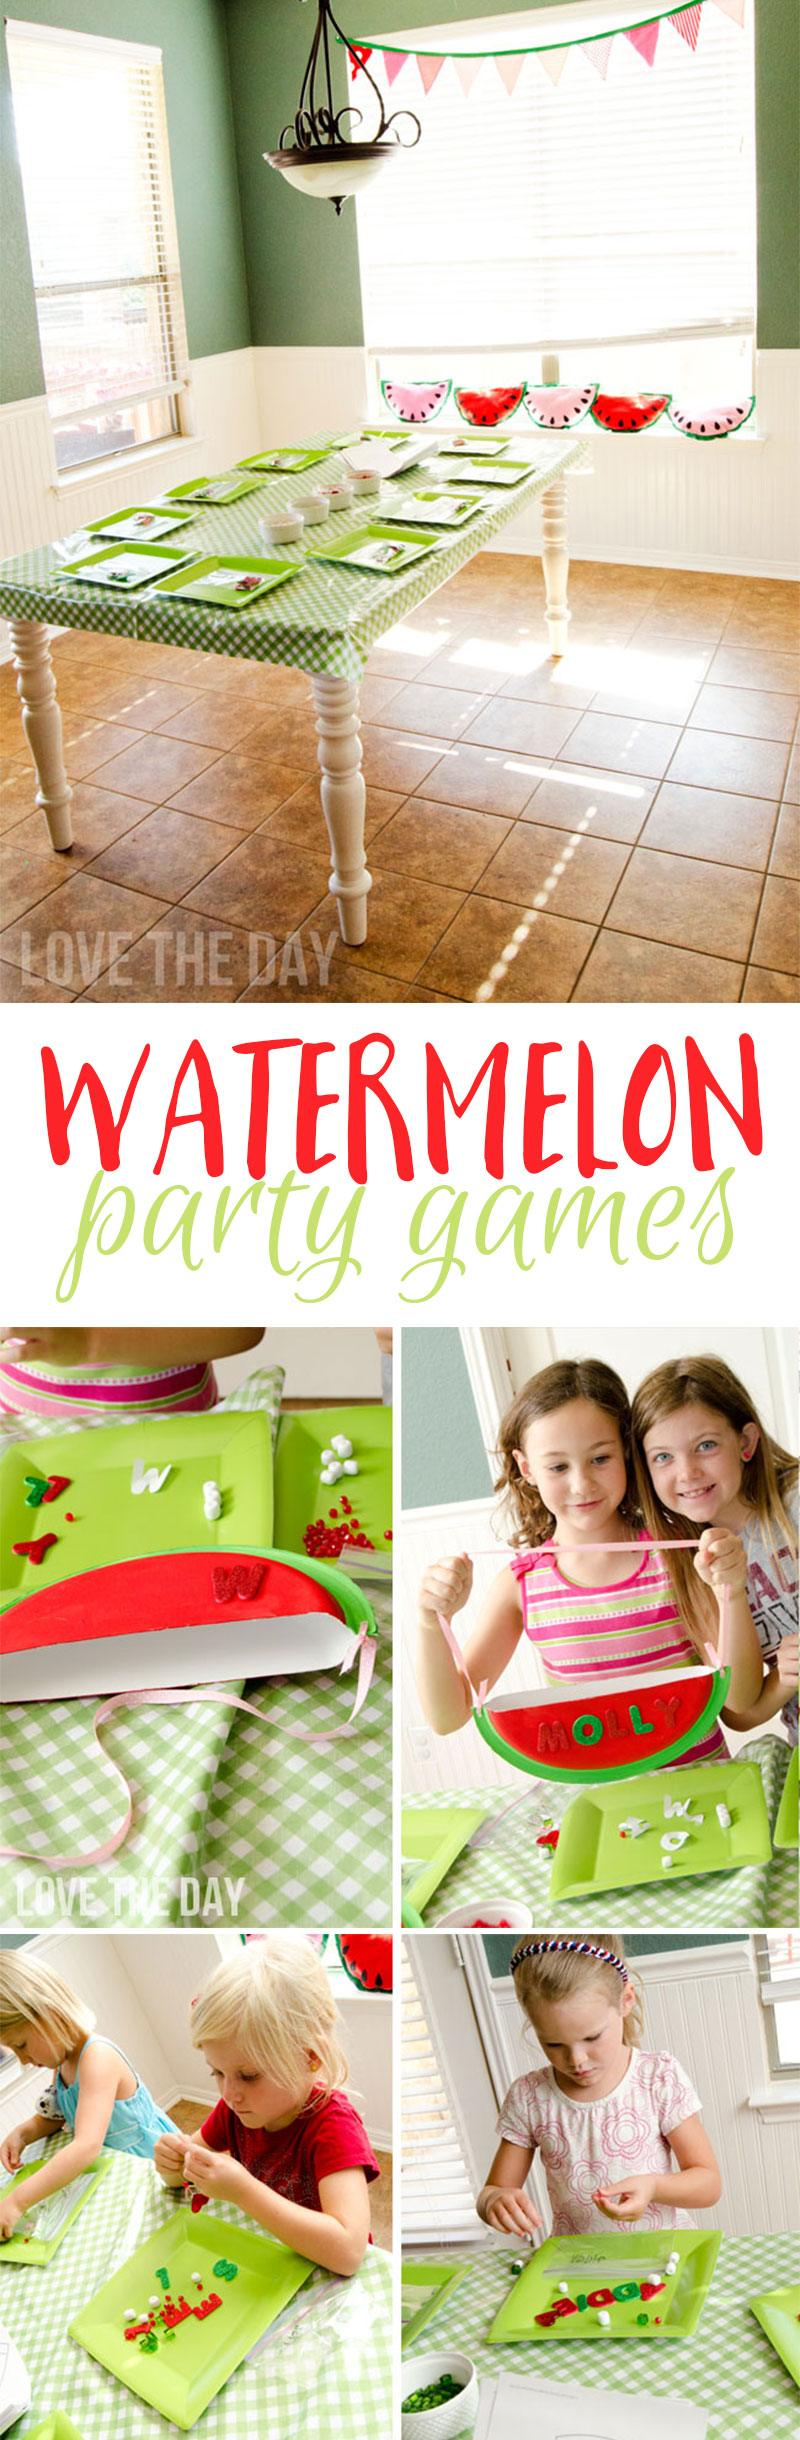 Watermelon Party Activities by Lindi Haws of Love The Day